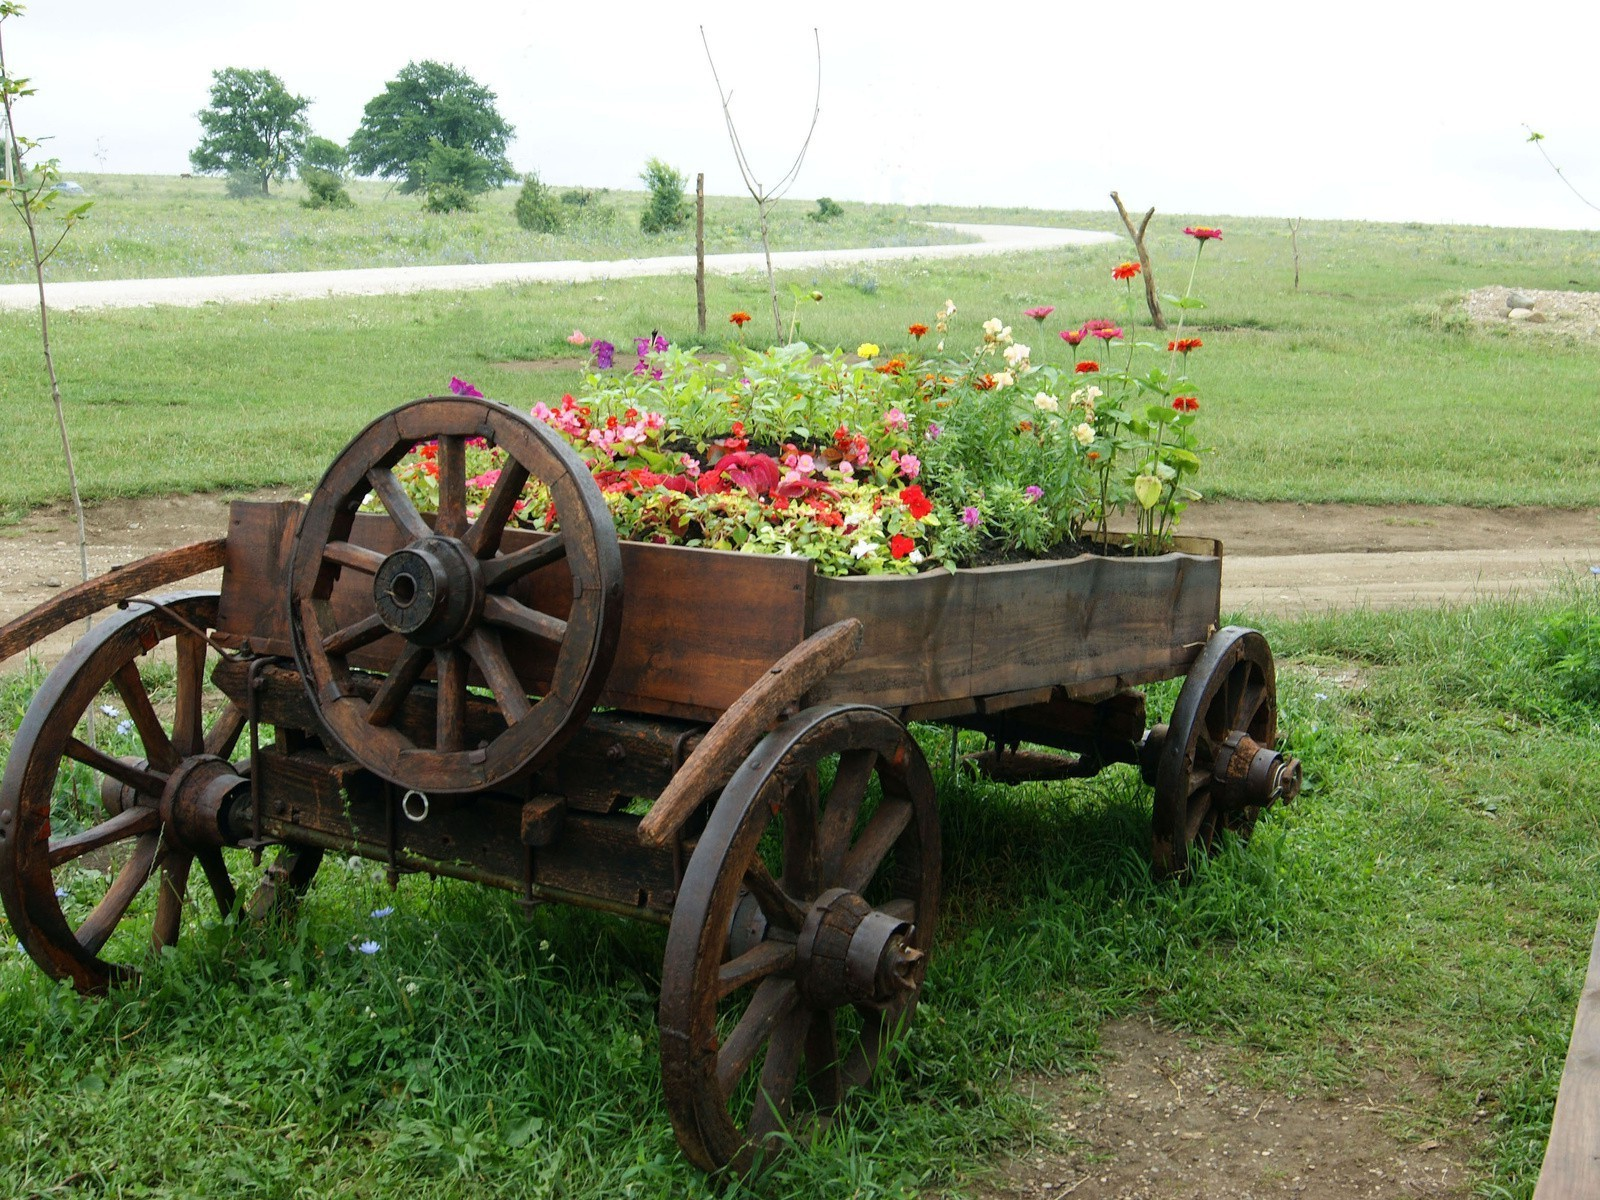 fields meadows and valleys farm agriculture grass cart rural wooden summer wood wagon carriage countryside garden